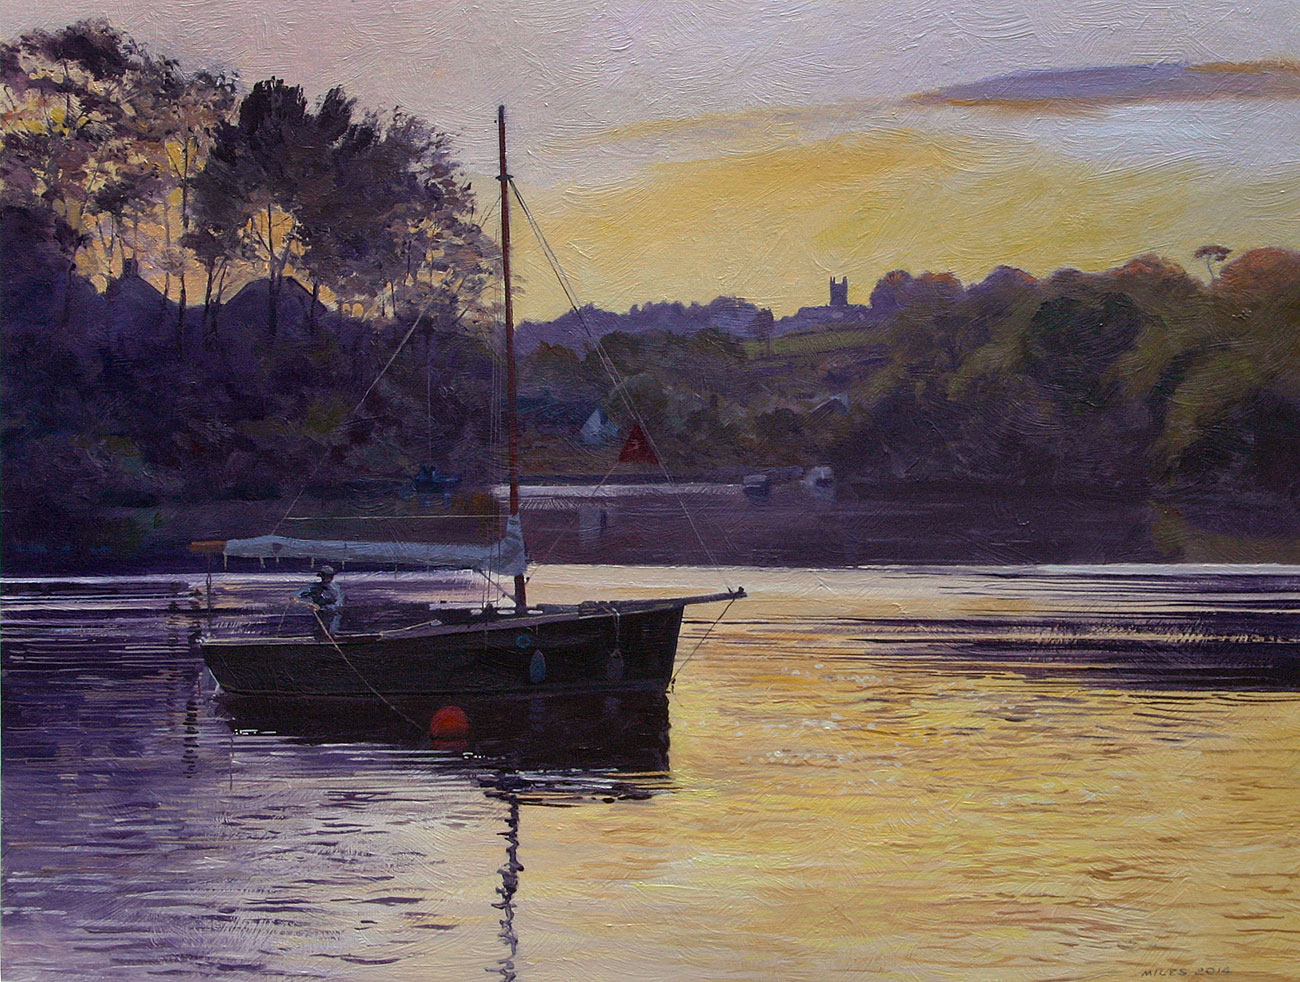 Gerry-Miles-devonpaint-devon-paintings-Kingsbridge-Creek.jpg